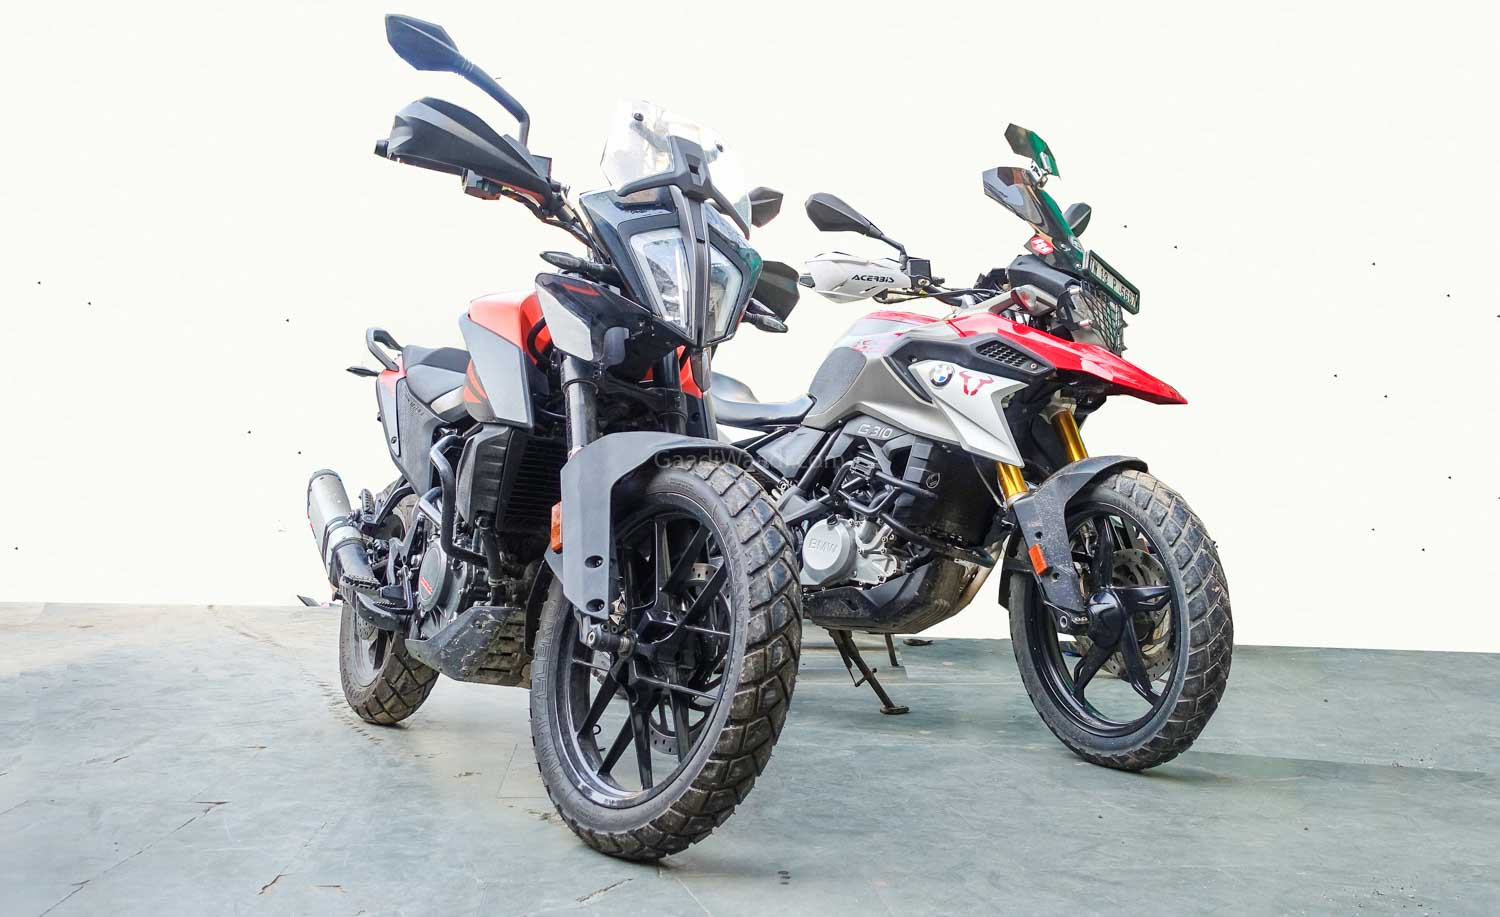 BMW G310 GS Owner Reviews His Bike Against KTM 390 Adventure thumbnail